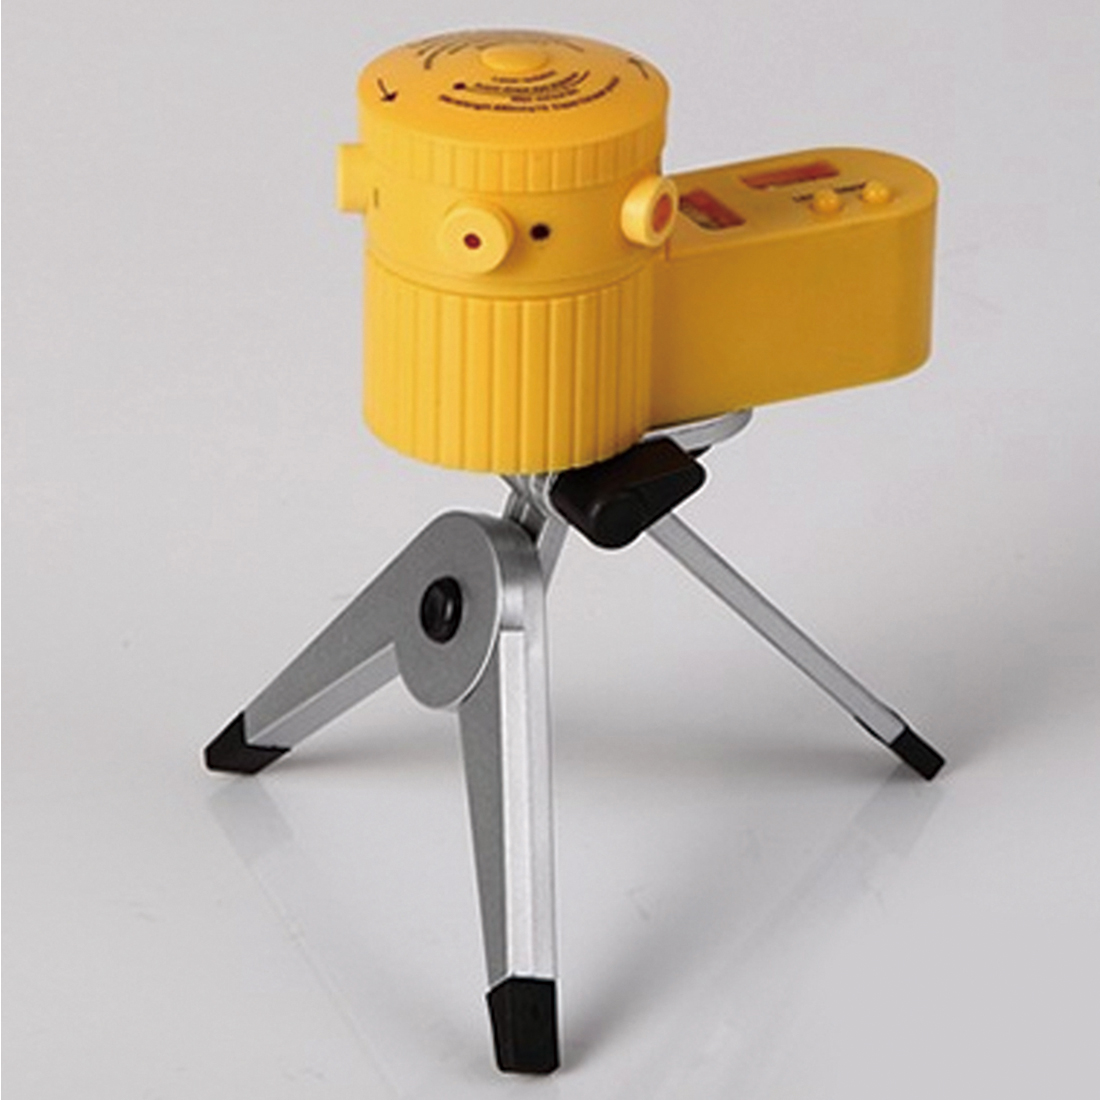 New Arrival Worldwide Multifunction Cross Laser Level Leveler Vertical Horizontal Line Tool With Tripod